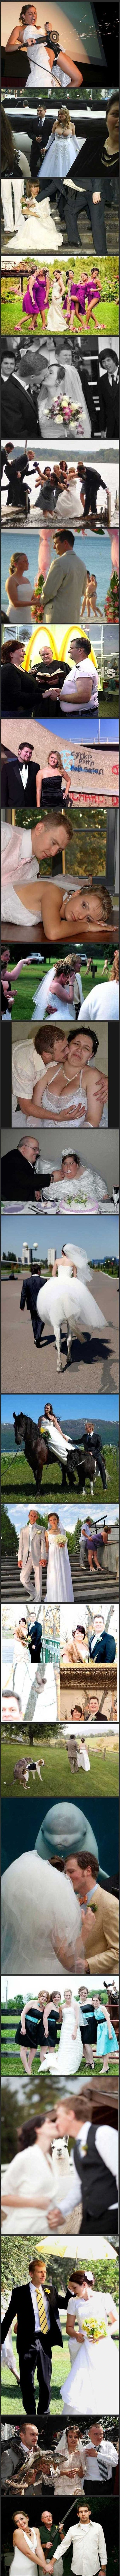 Hilarious WTF wedding photos. These are so funny OMG